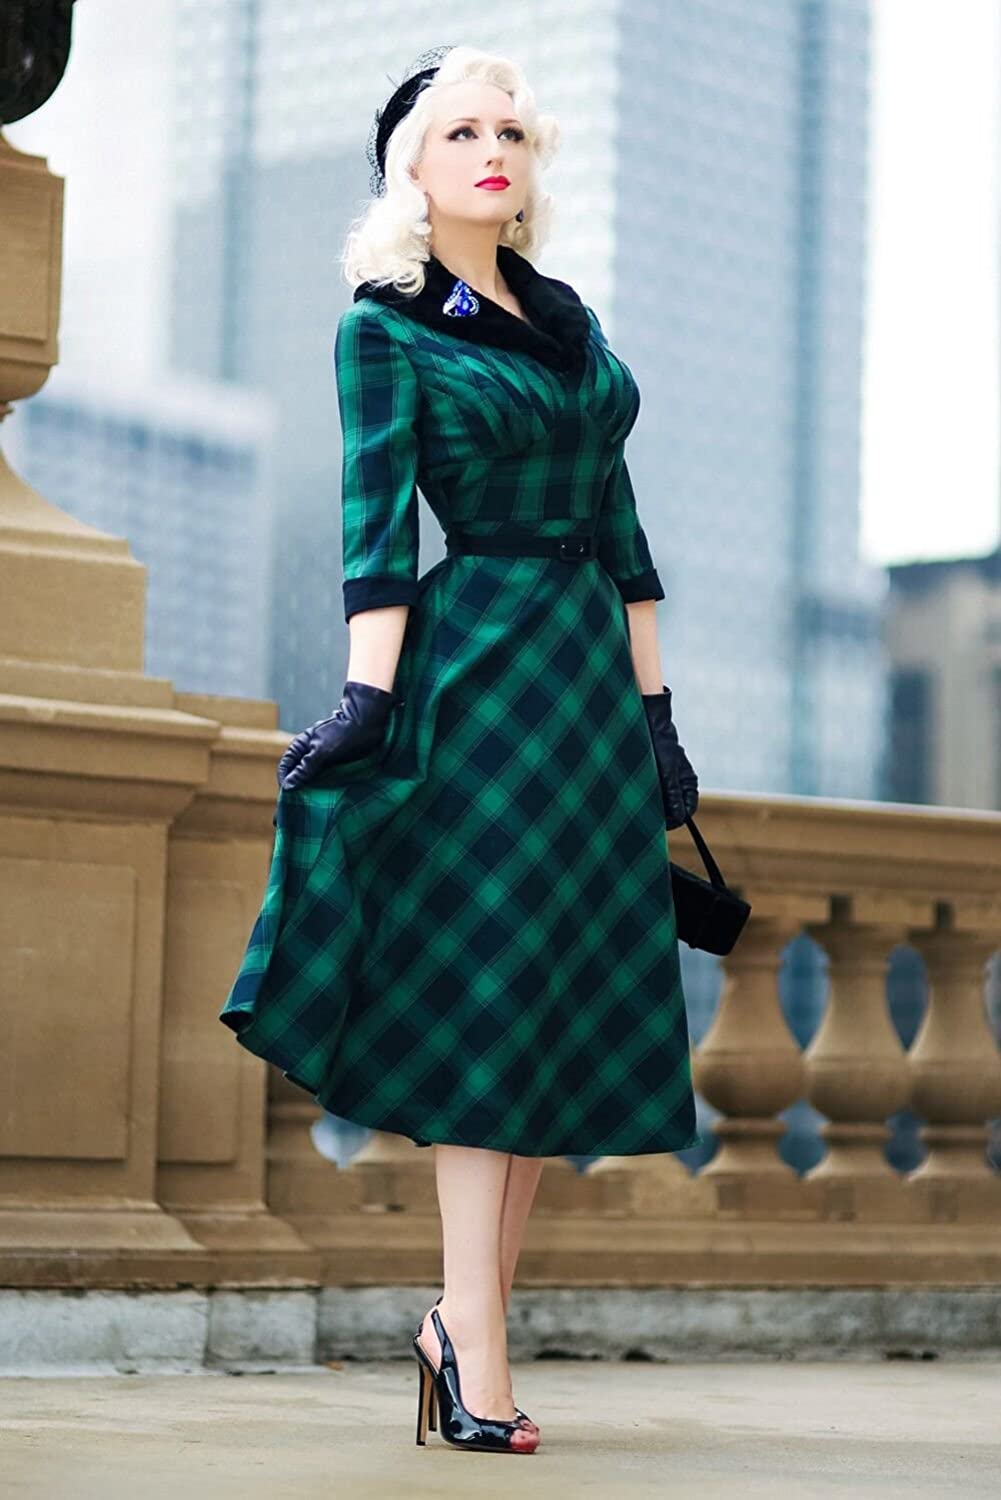 Rockabilly Dresses | Rockabilly Clothing | Viva Las Vegas Voodoo Vixen Retro Vintage Lola Plaid Faux Fur Collar 3/4 Sleeve Swing Dress $81.95 AT vintagedancer.com